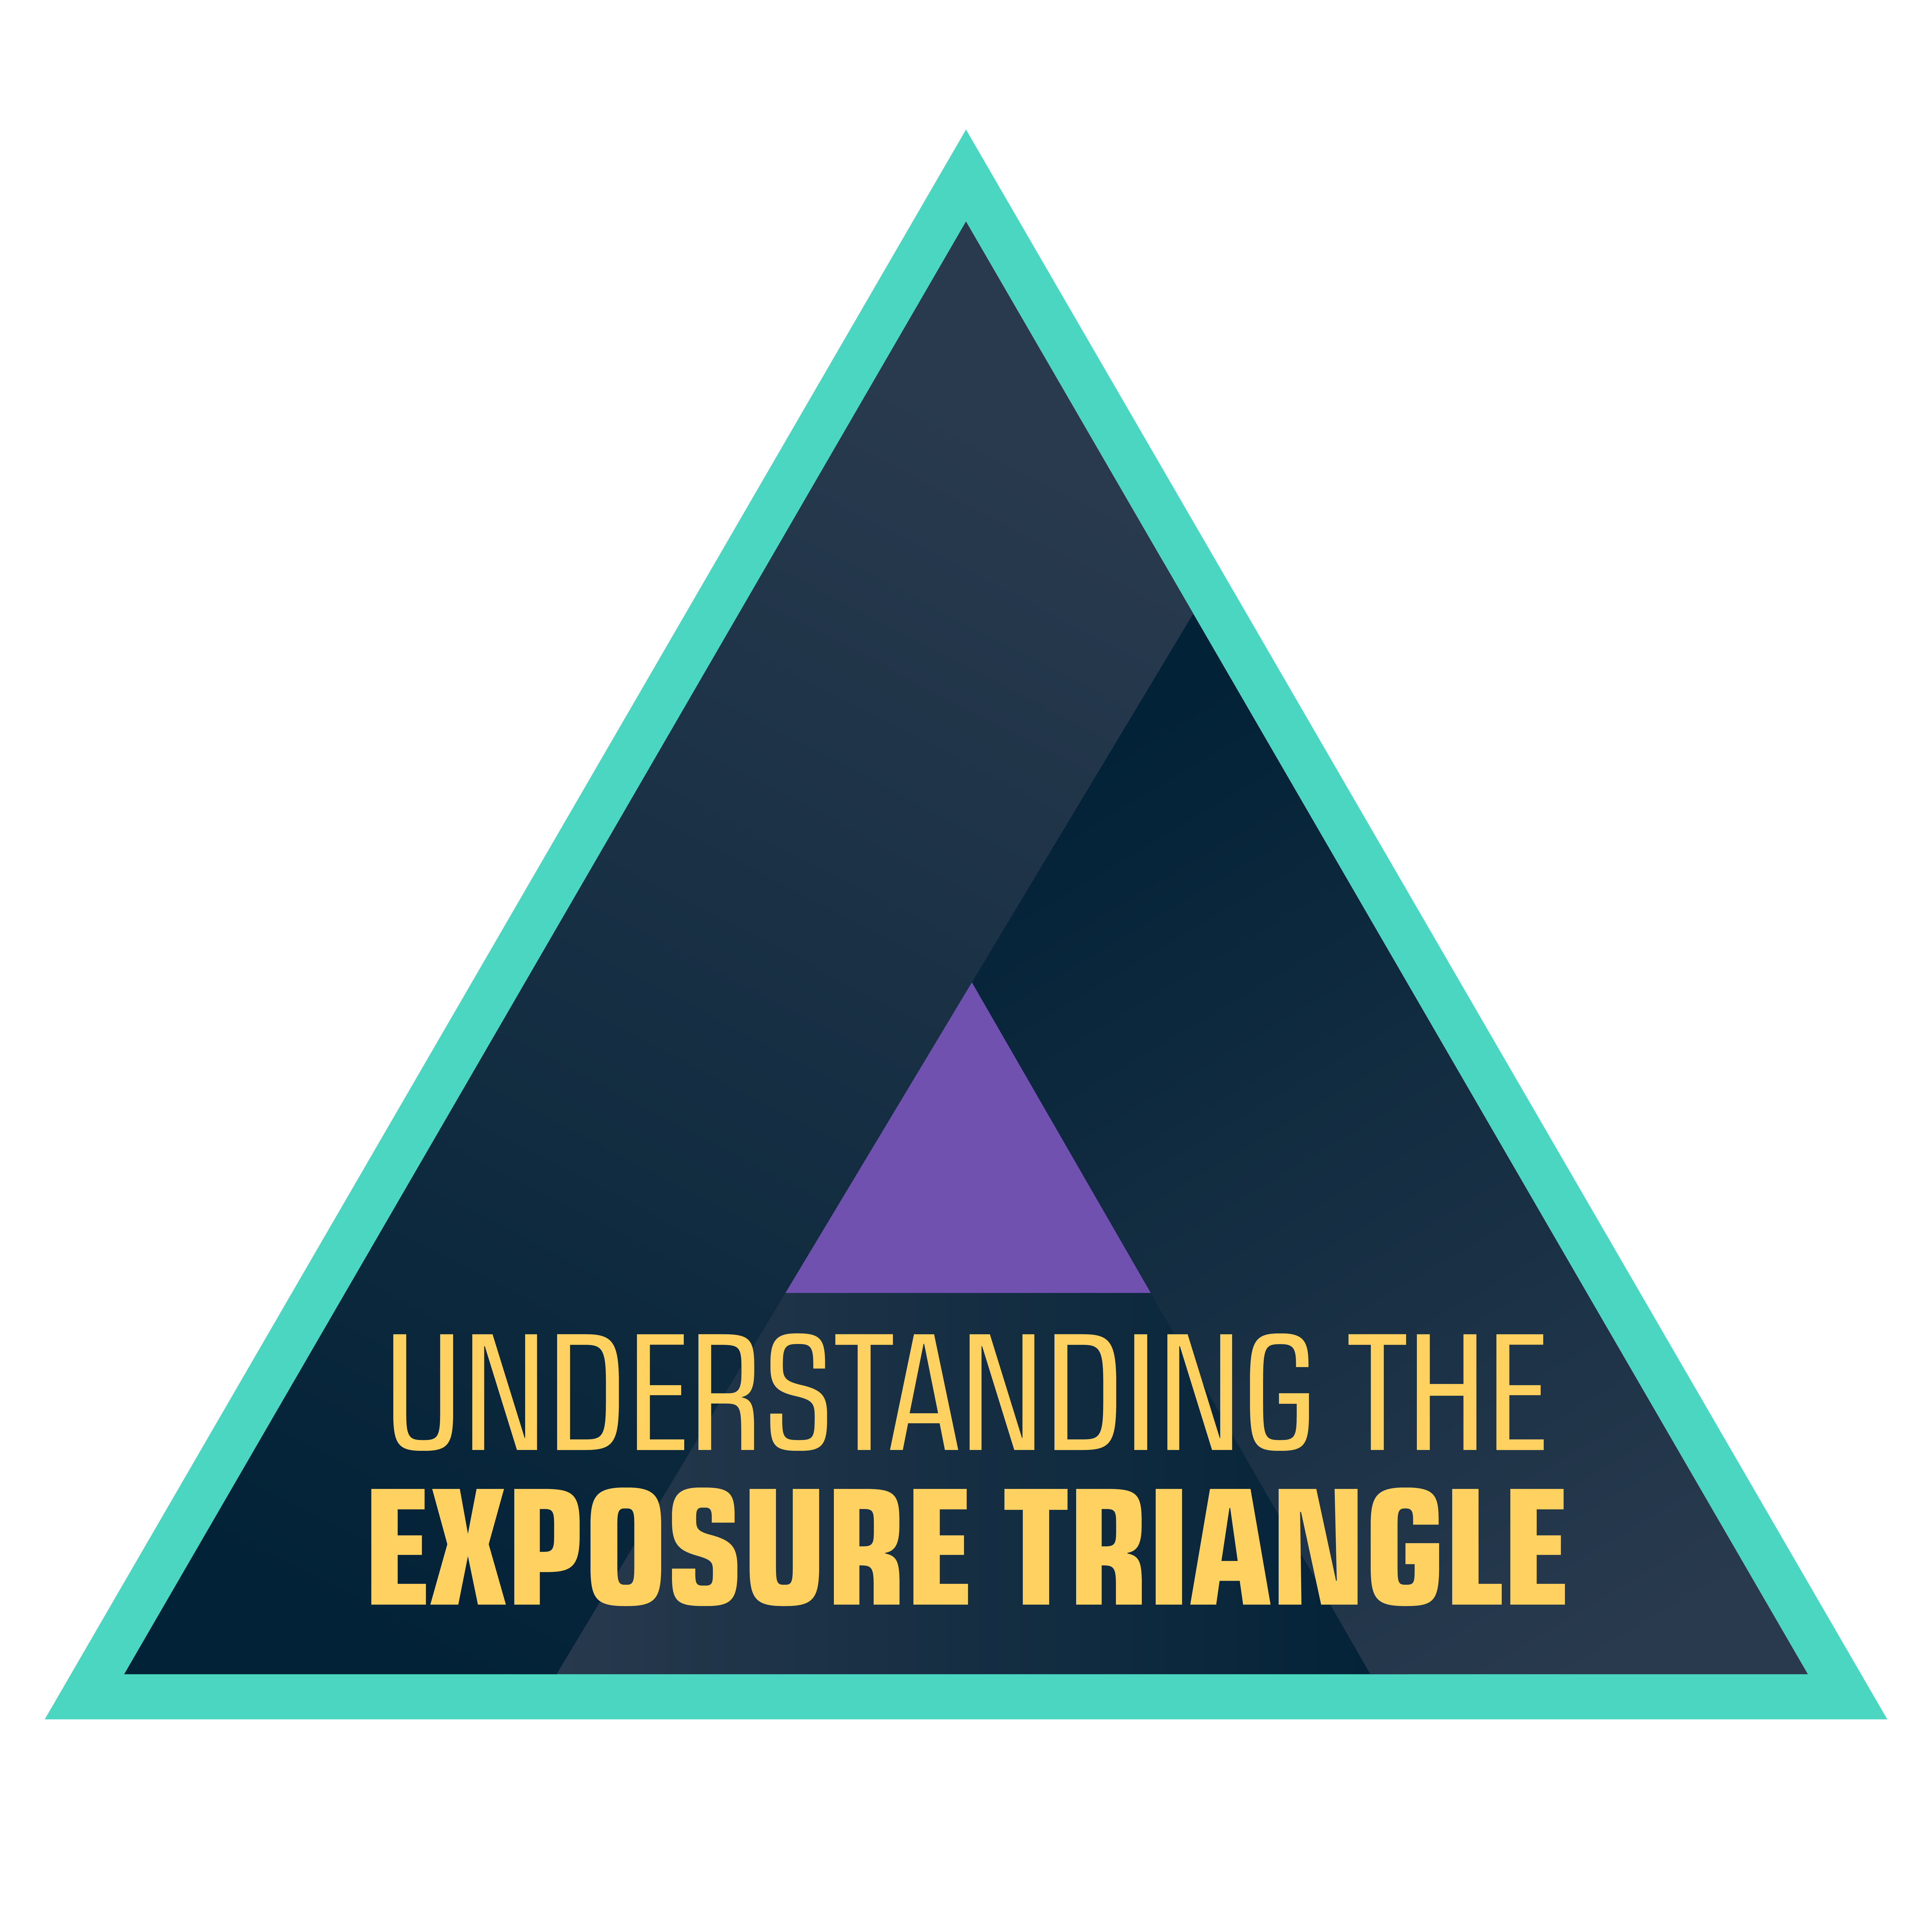 Photography course for drone pilots which is about understanding the exposure triangle